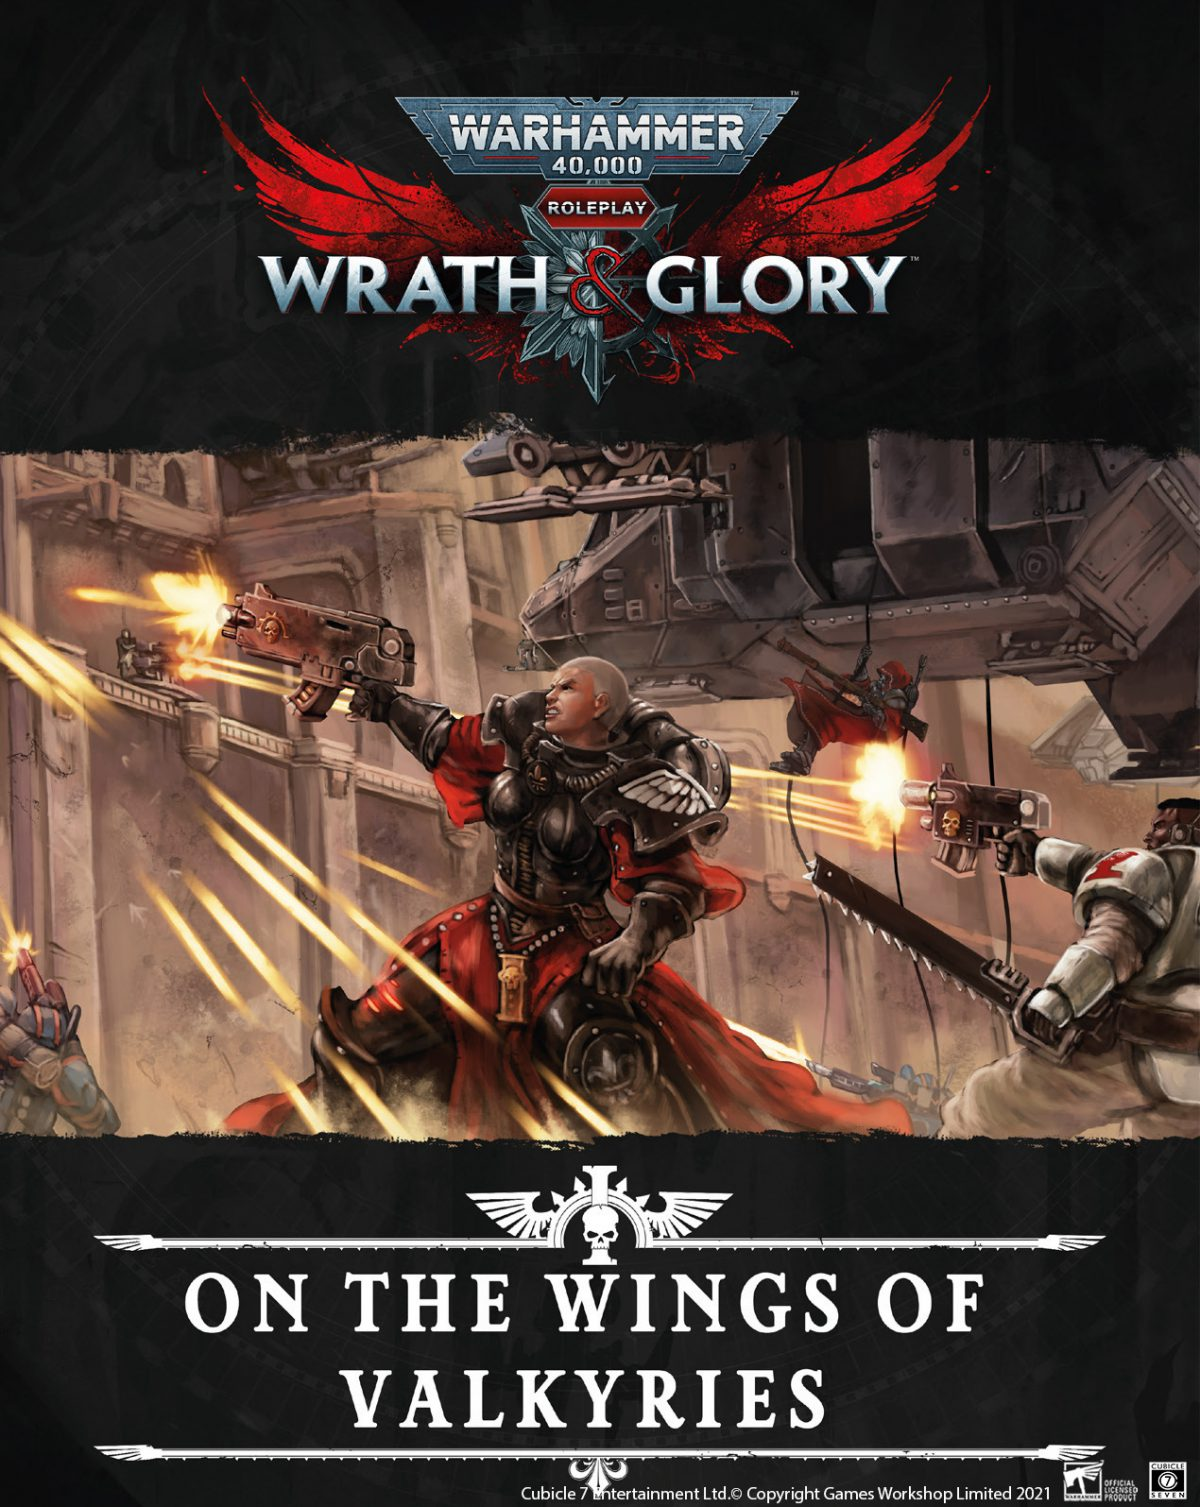 40k – On the Wings of Valkyries PDF Release!